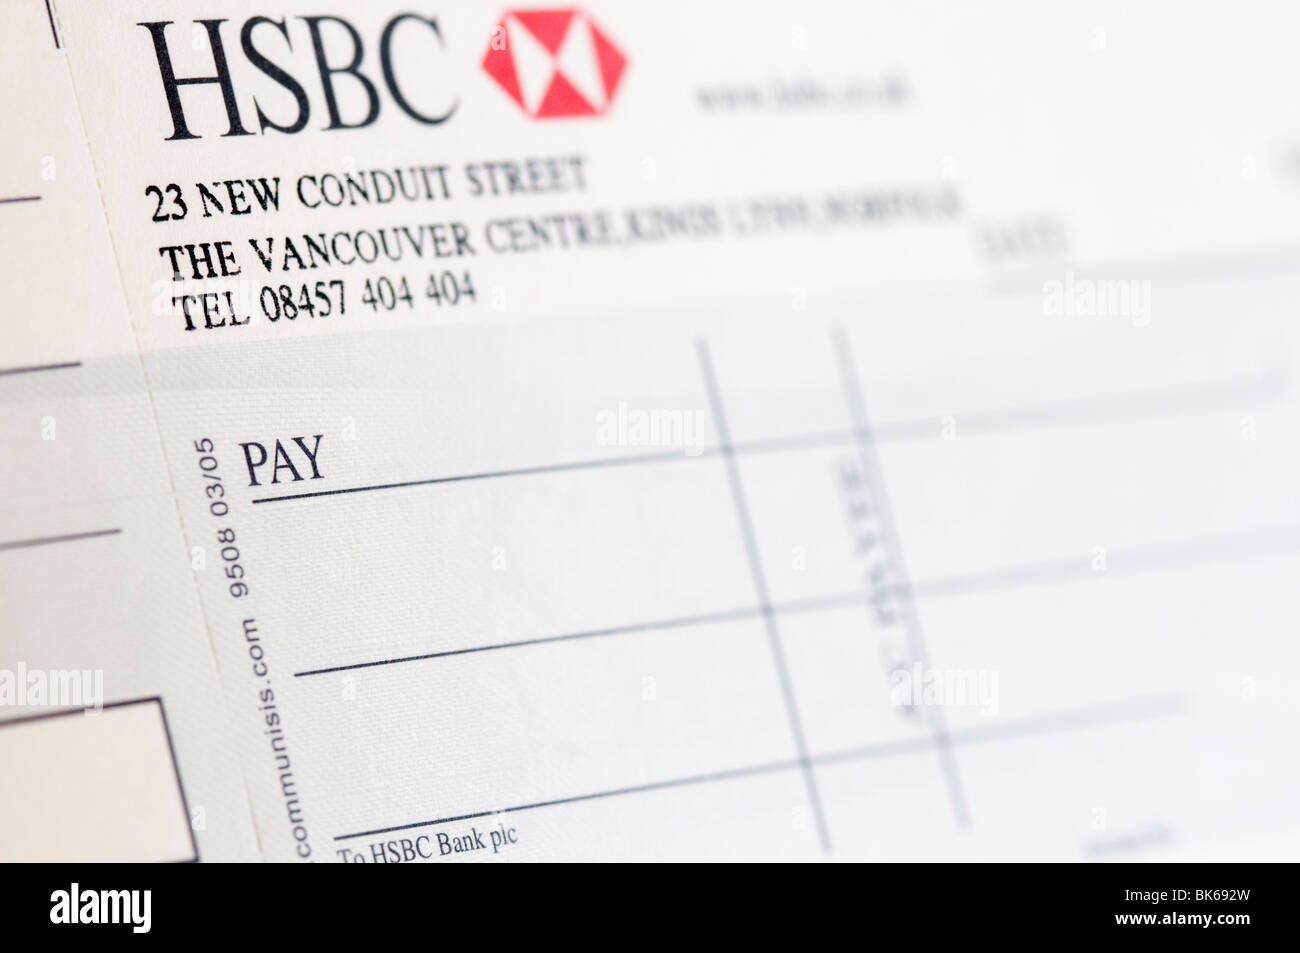 Hsbc Bank Cheque Stock Photos & Hsbc Bank Cheque Stock Images Alamy How To  Write A